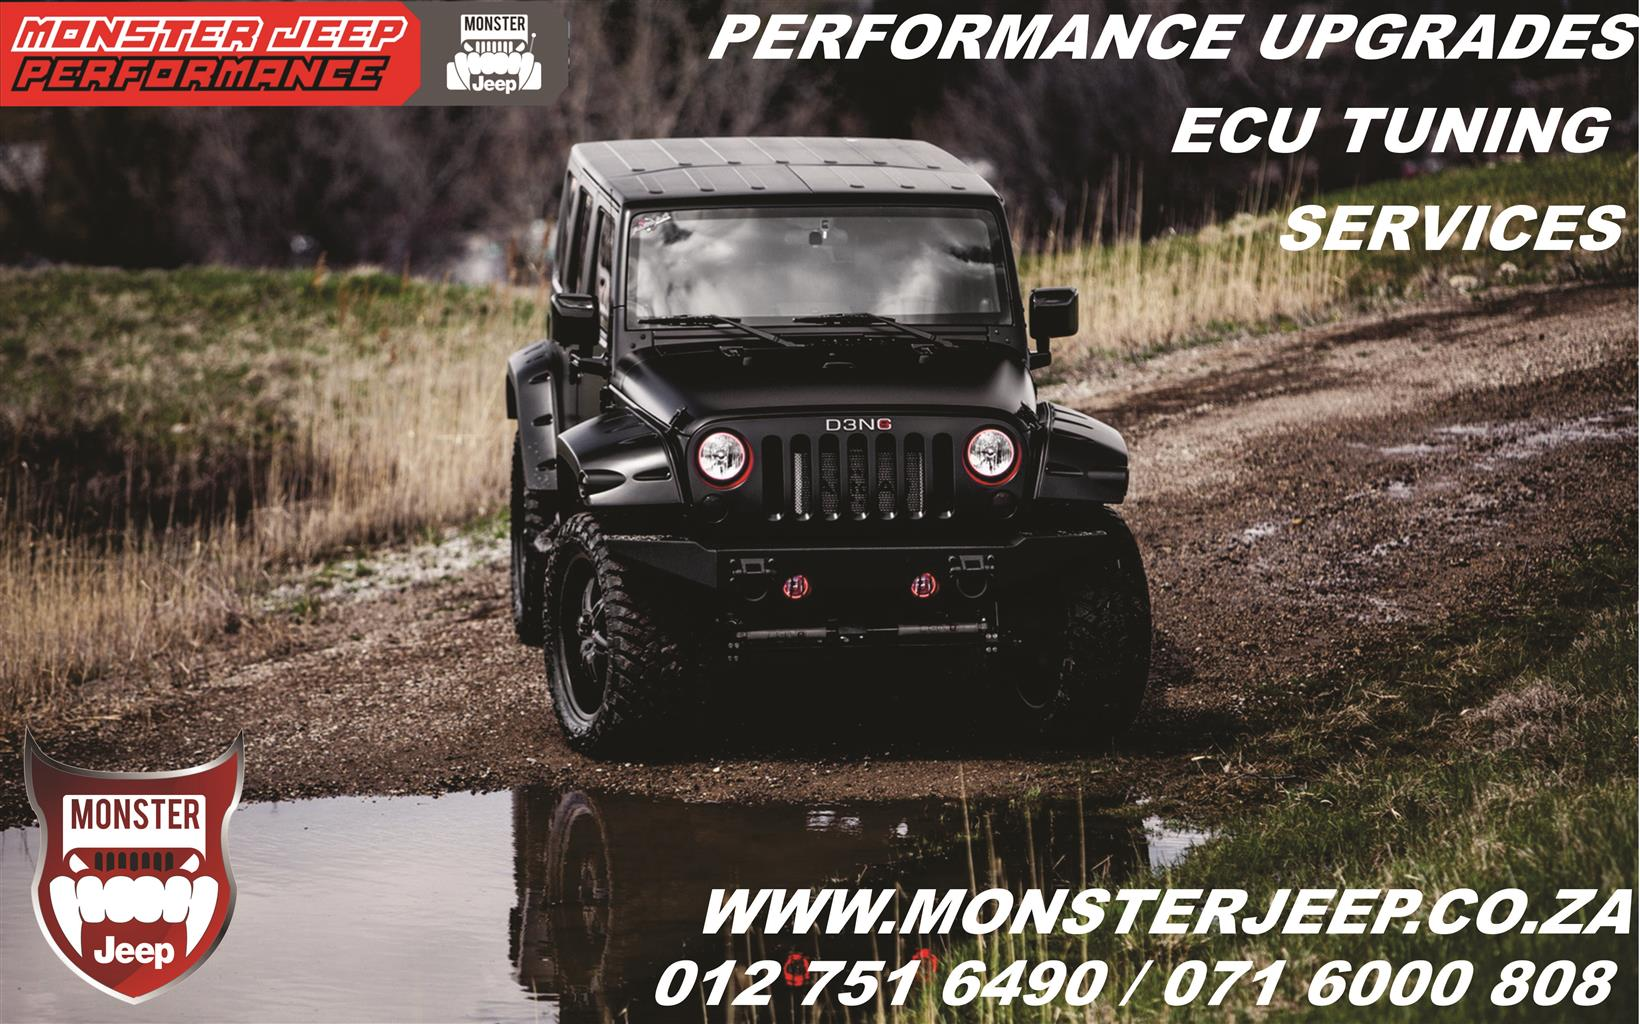 Jeep ECU Tuning / Performance / Services